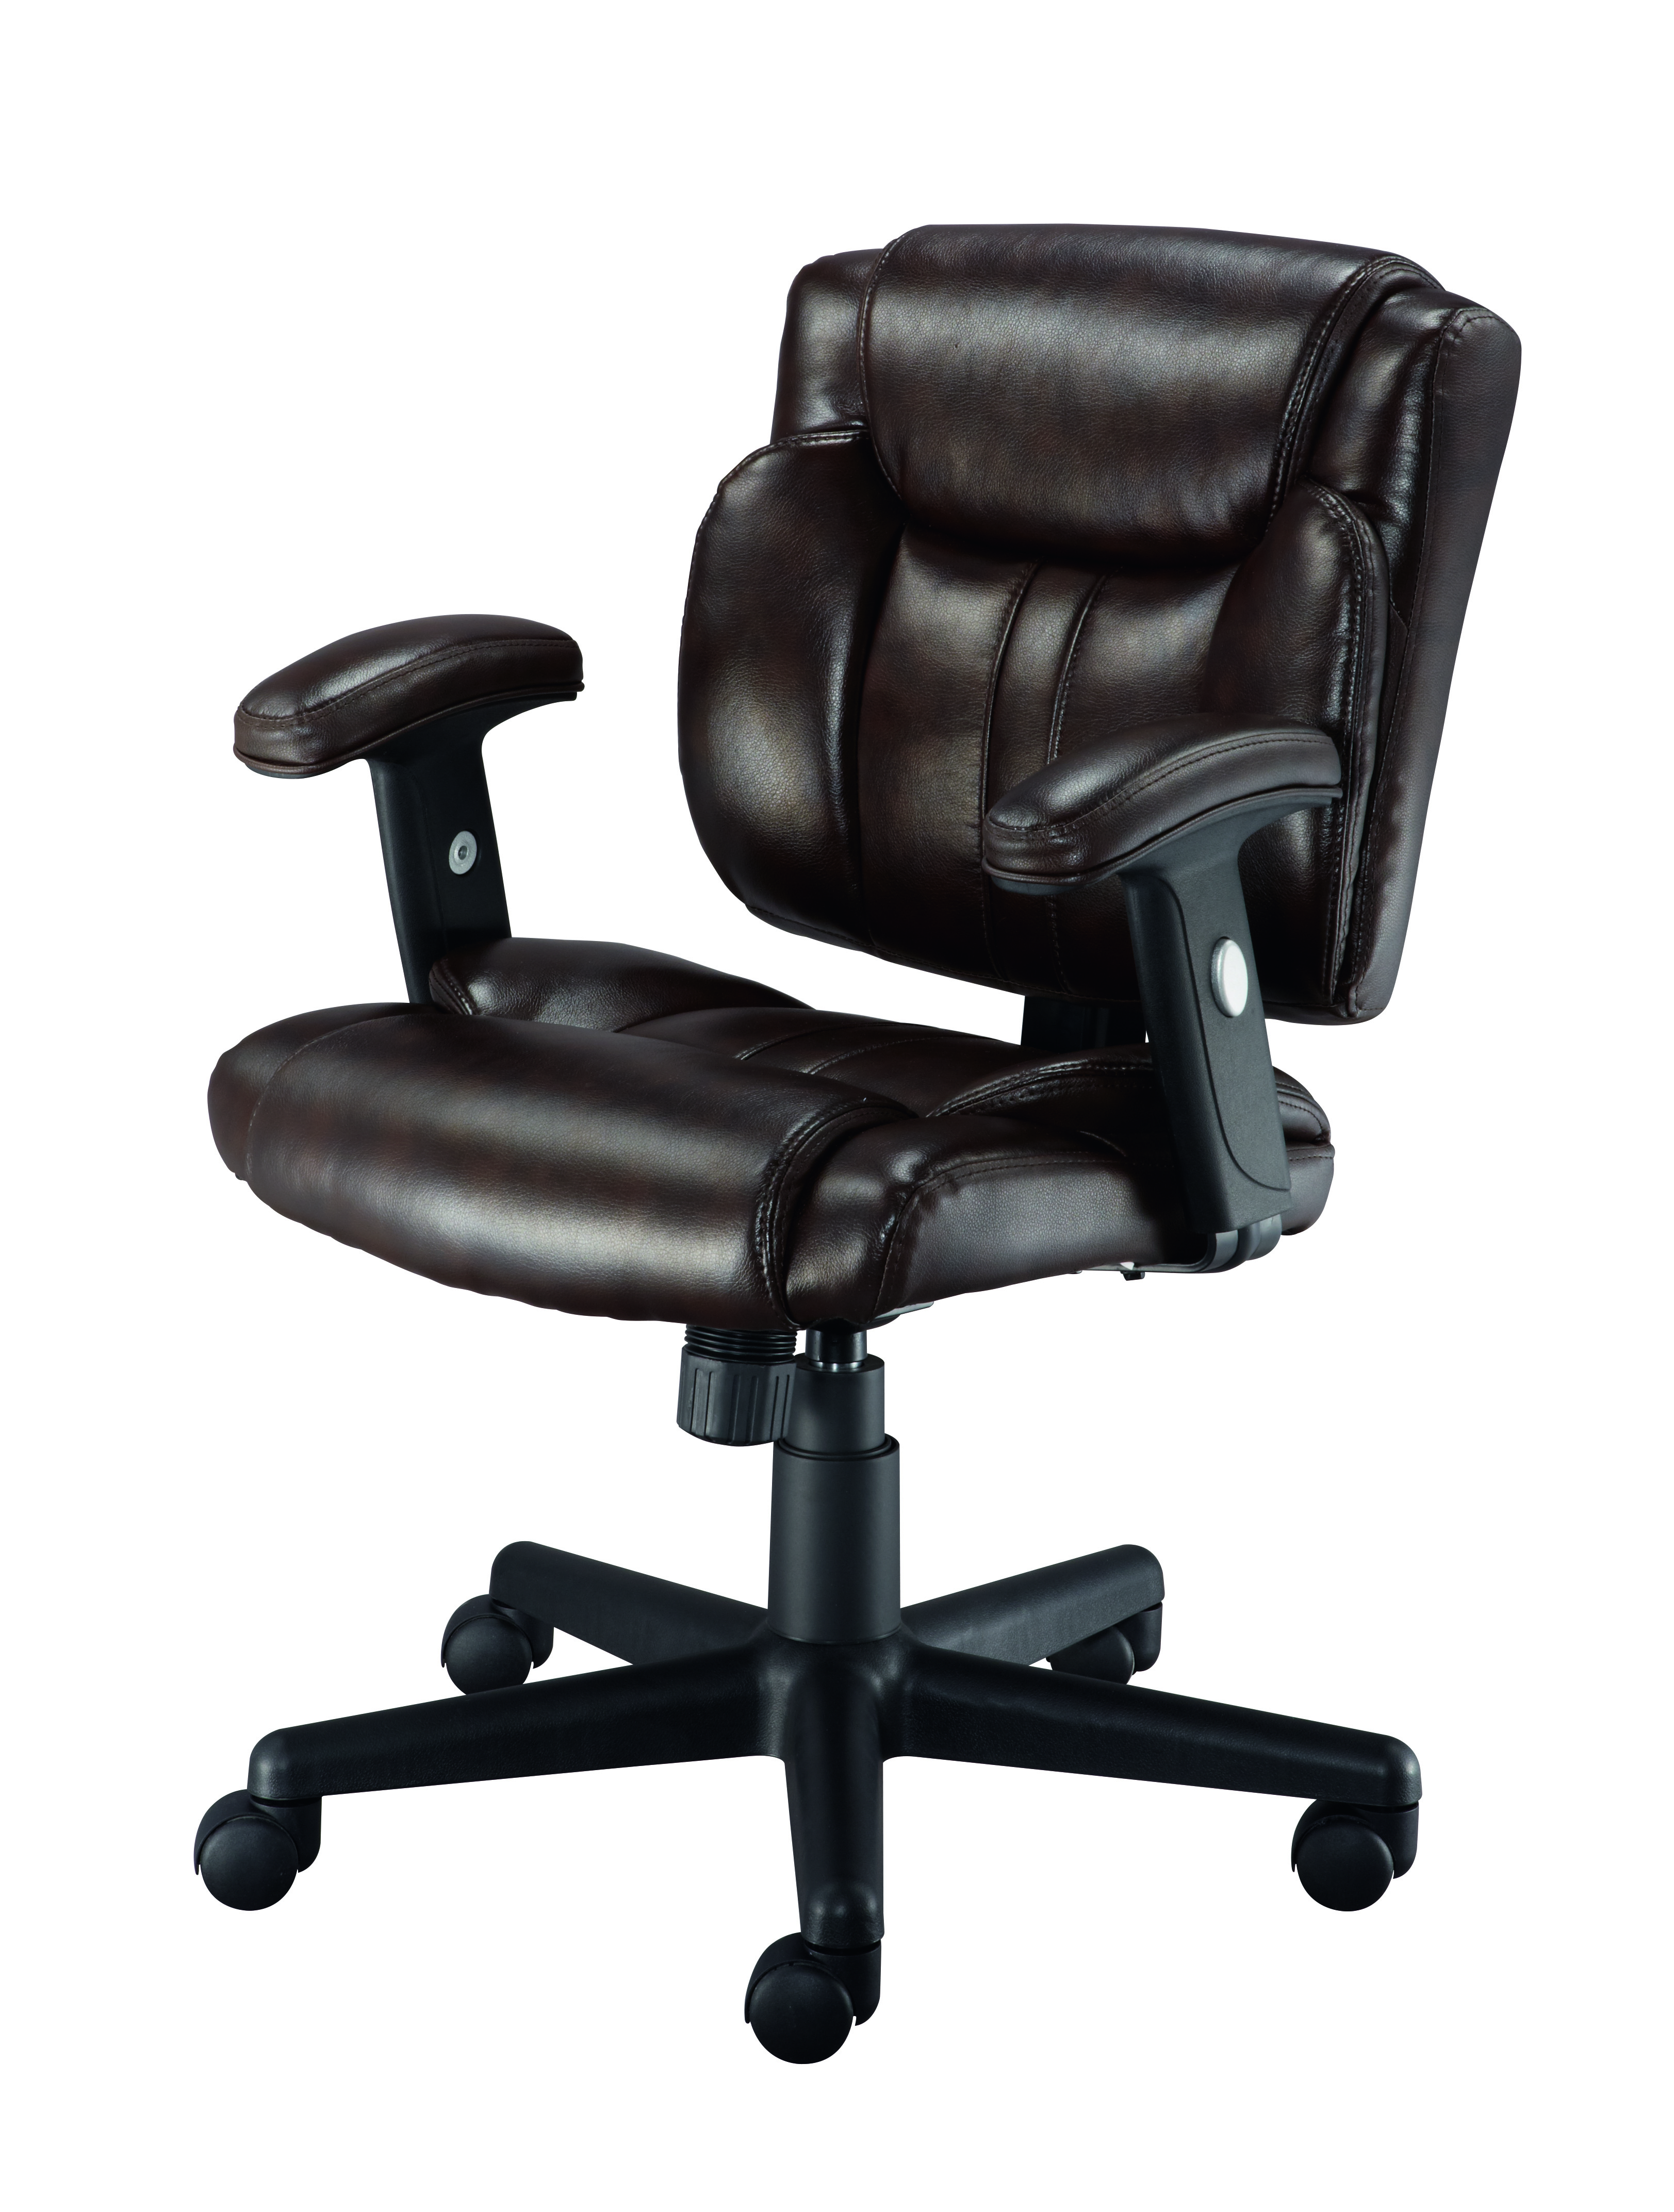 chairs at staples swing chair in stand telford ii luxura managers brown ebay